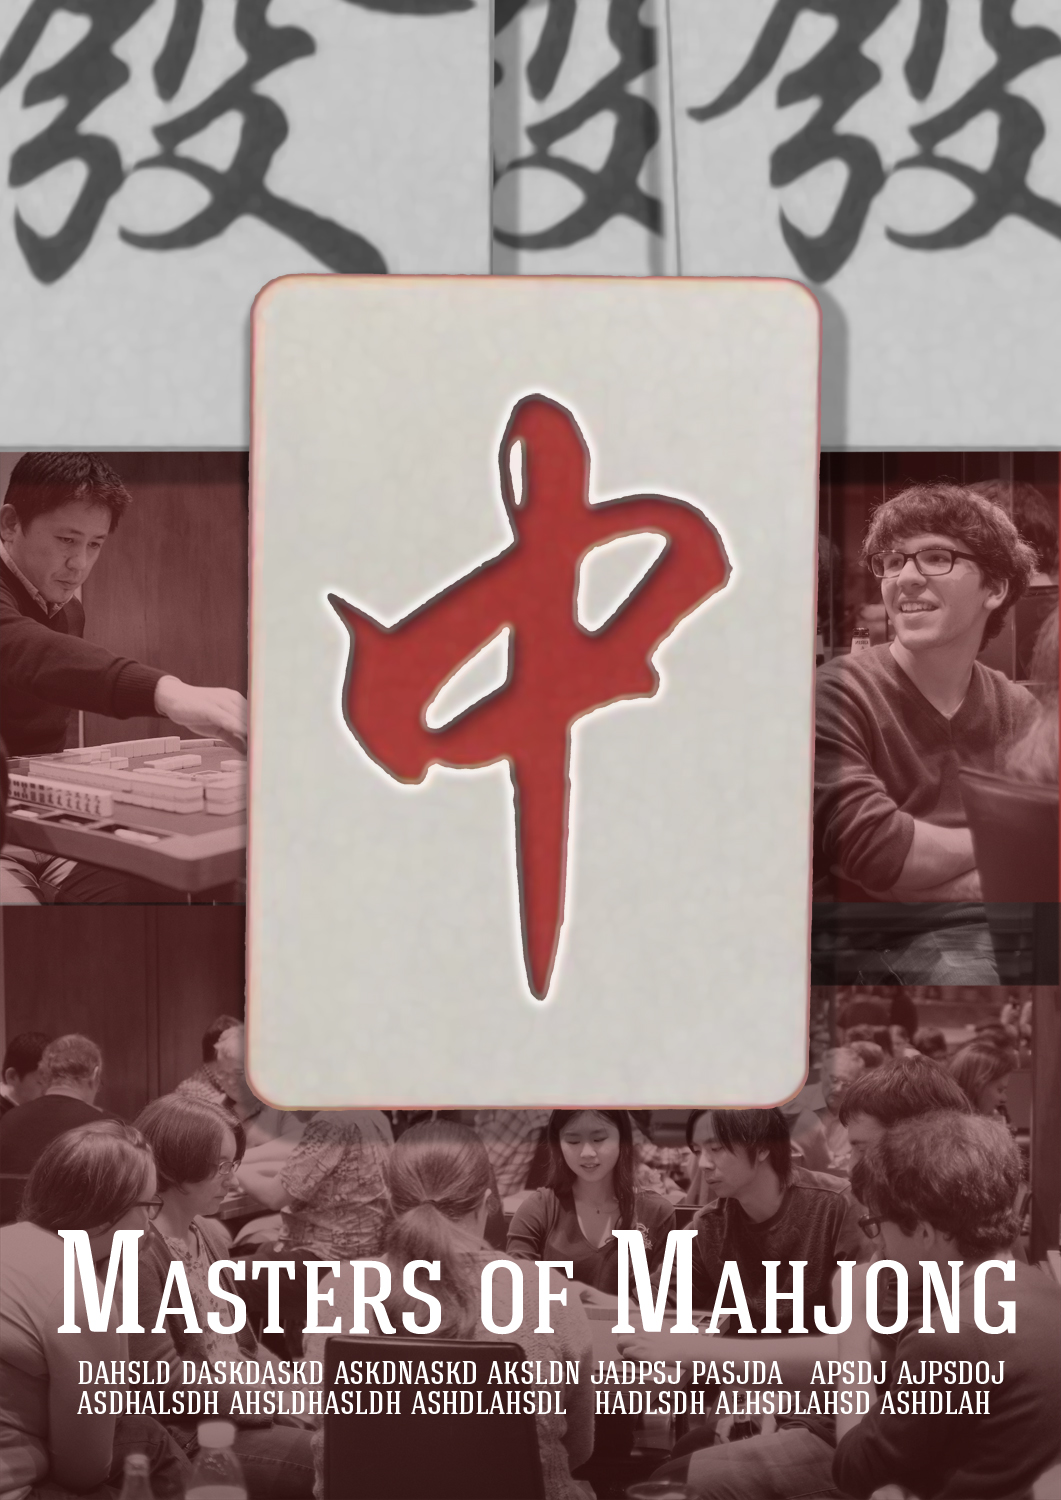 Poster design documentary - Poster Design By Nanocb72 For Movie Poster Design Documentary About Mahjong Design 13577377